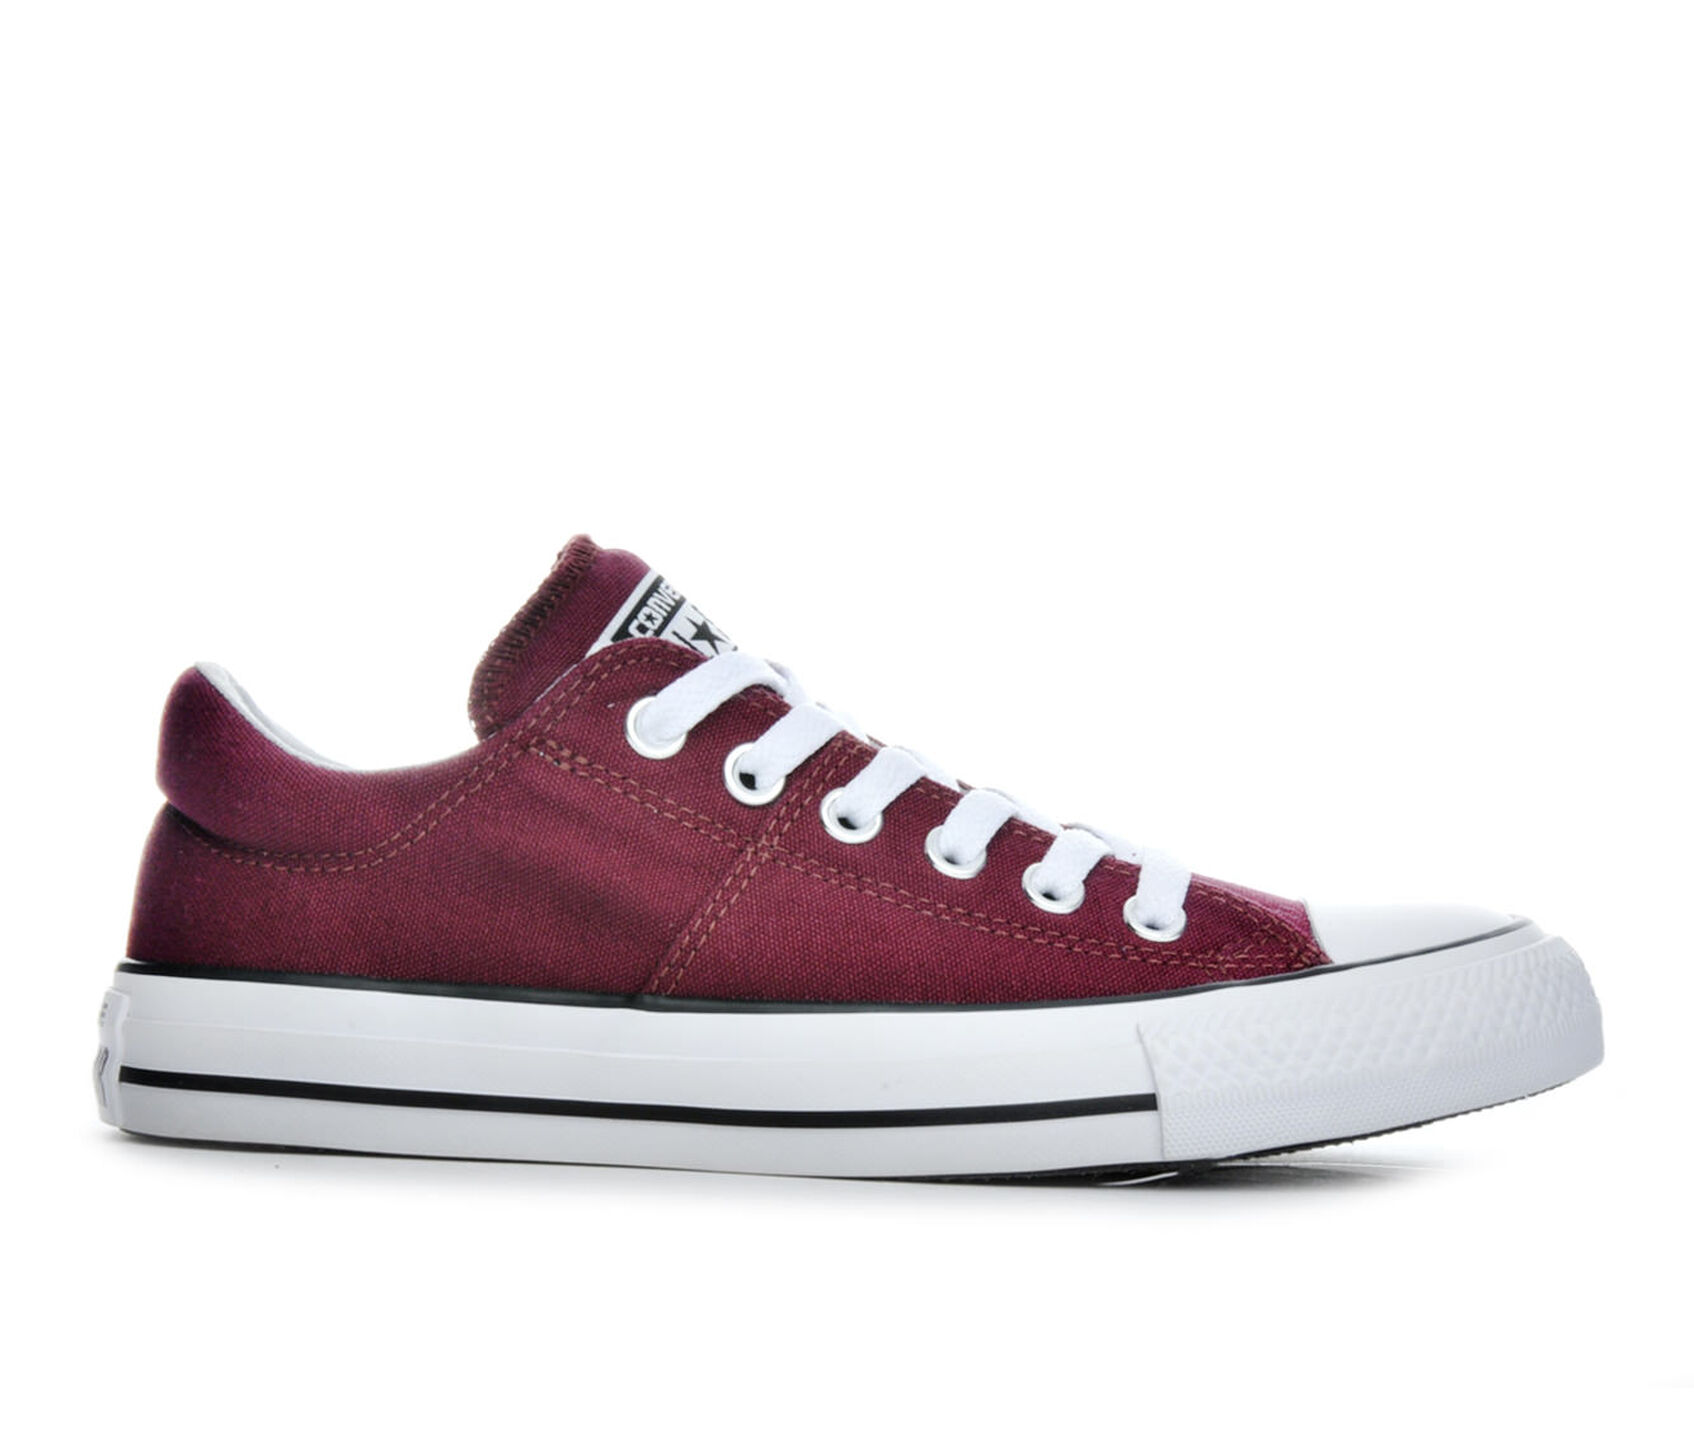 Where Can You Buy Converse Tennis Shoes